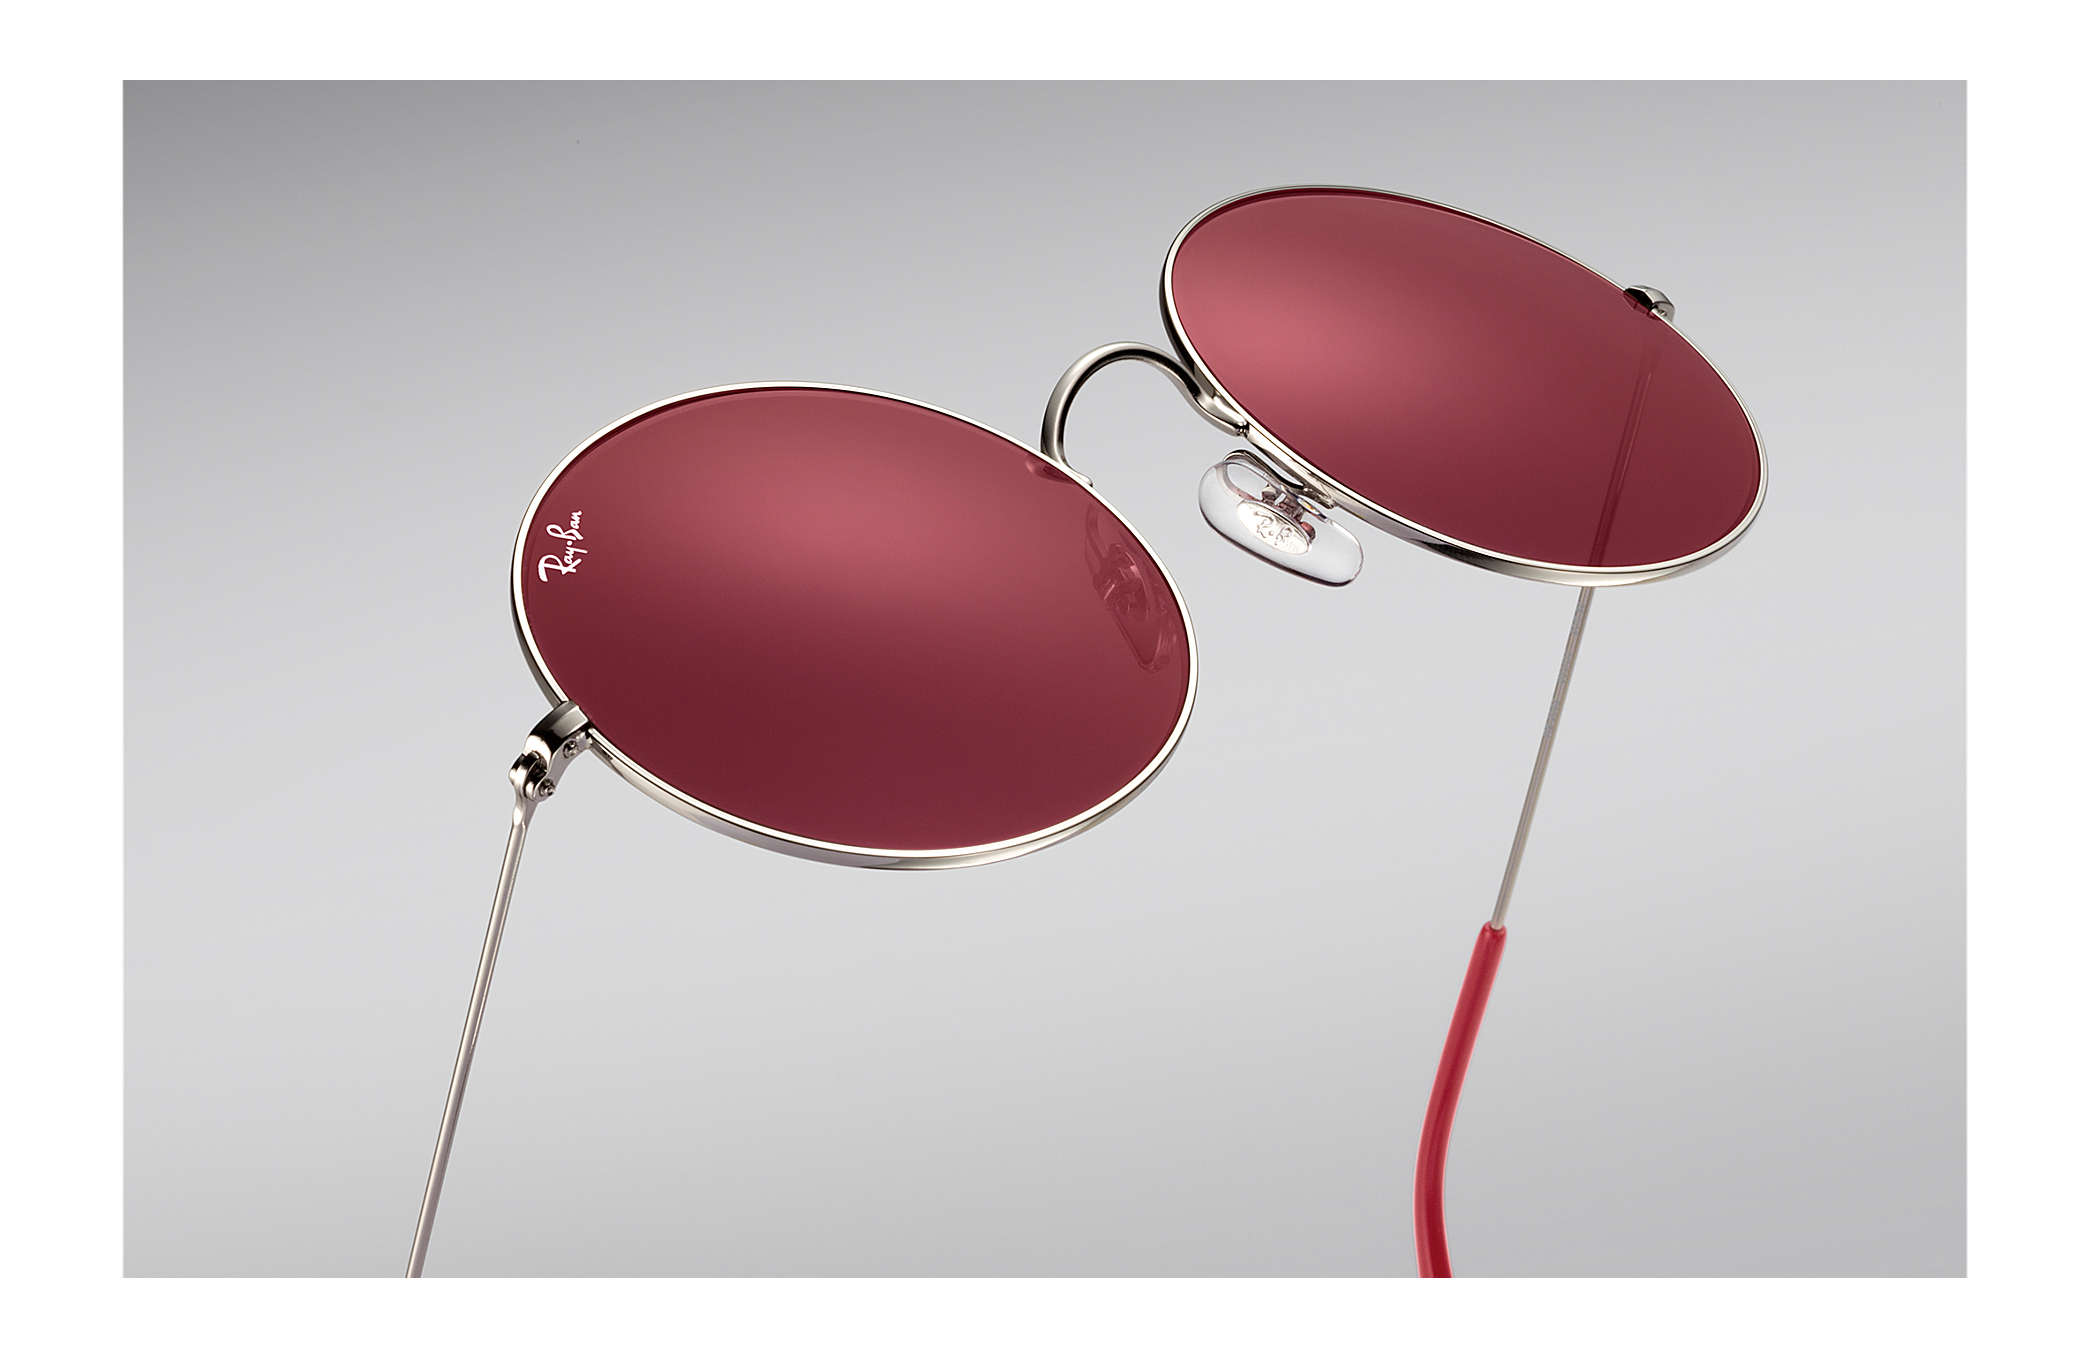 ray ban models 8fp5  The mix of contemporary ideas and features coupled with iconic trends make  you stand out from the crowd, and these latest models are no different!